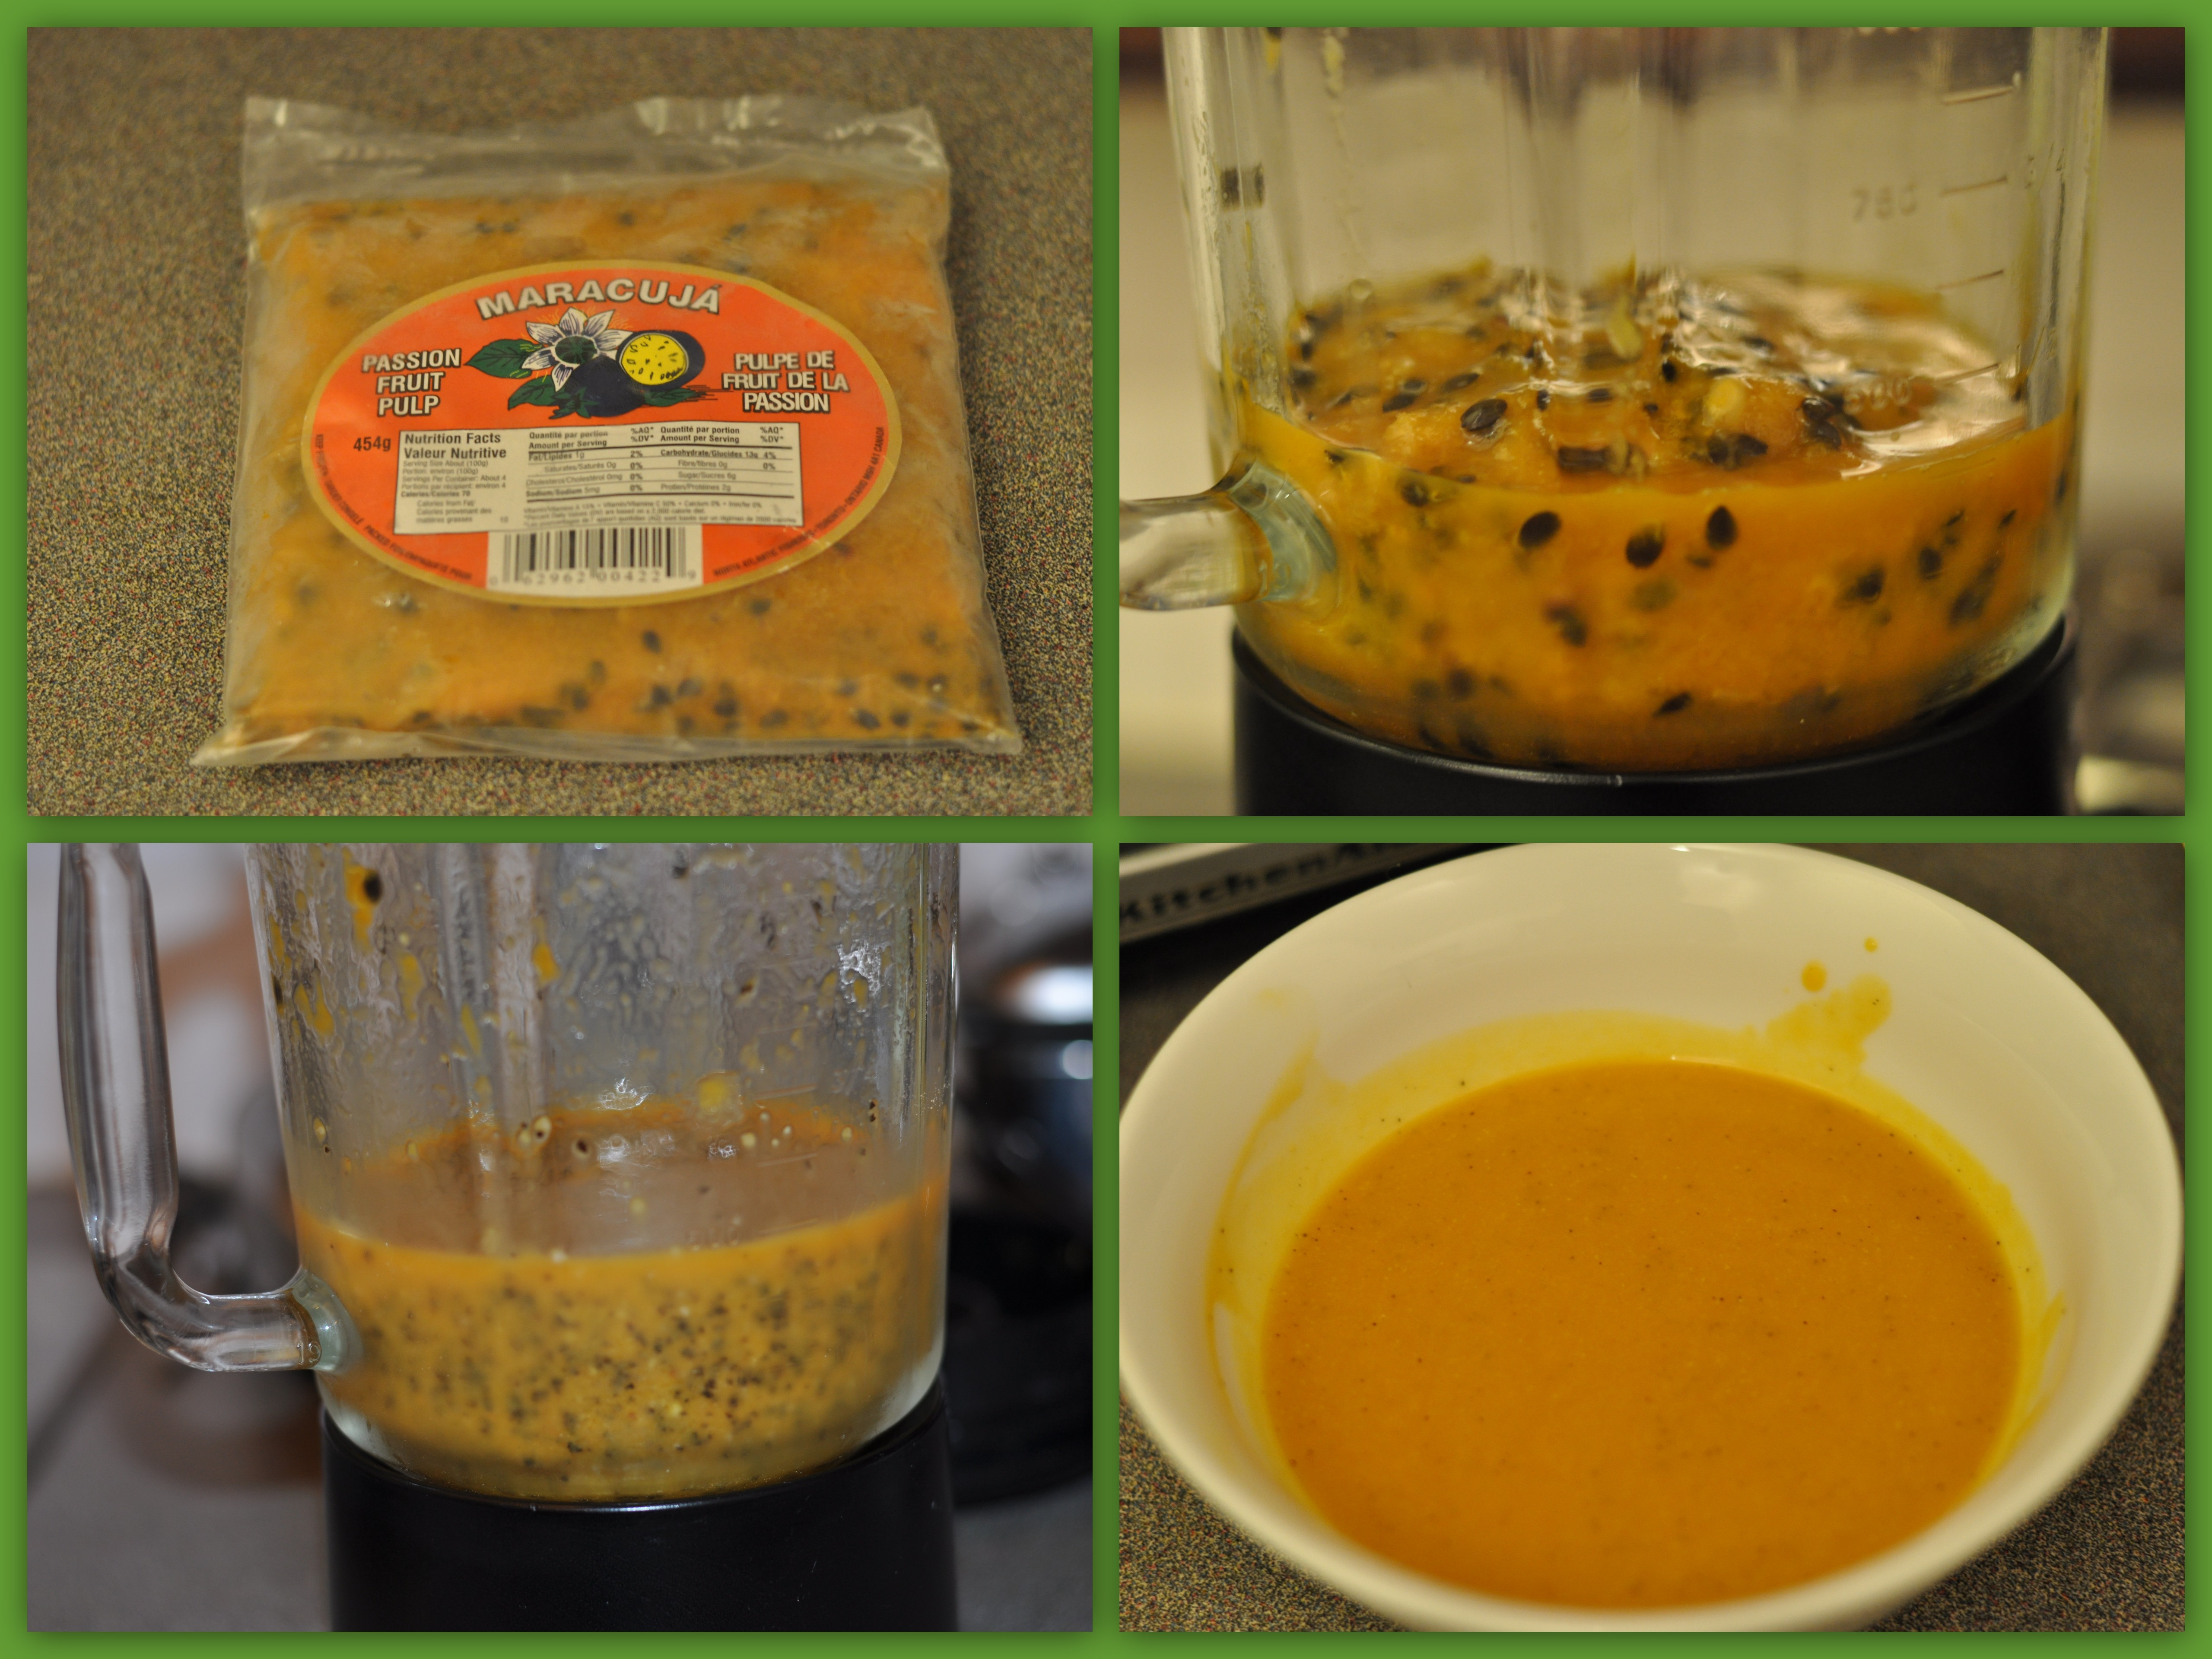 Passion Fruit Puree Whole Foods